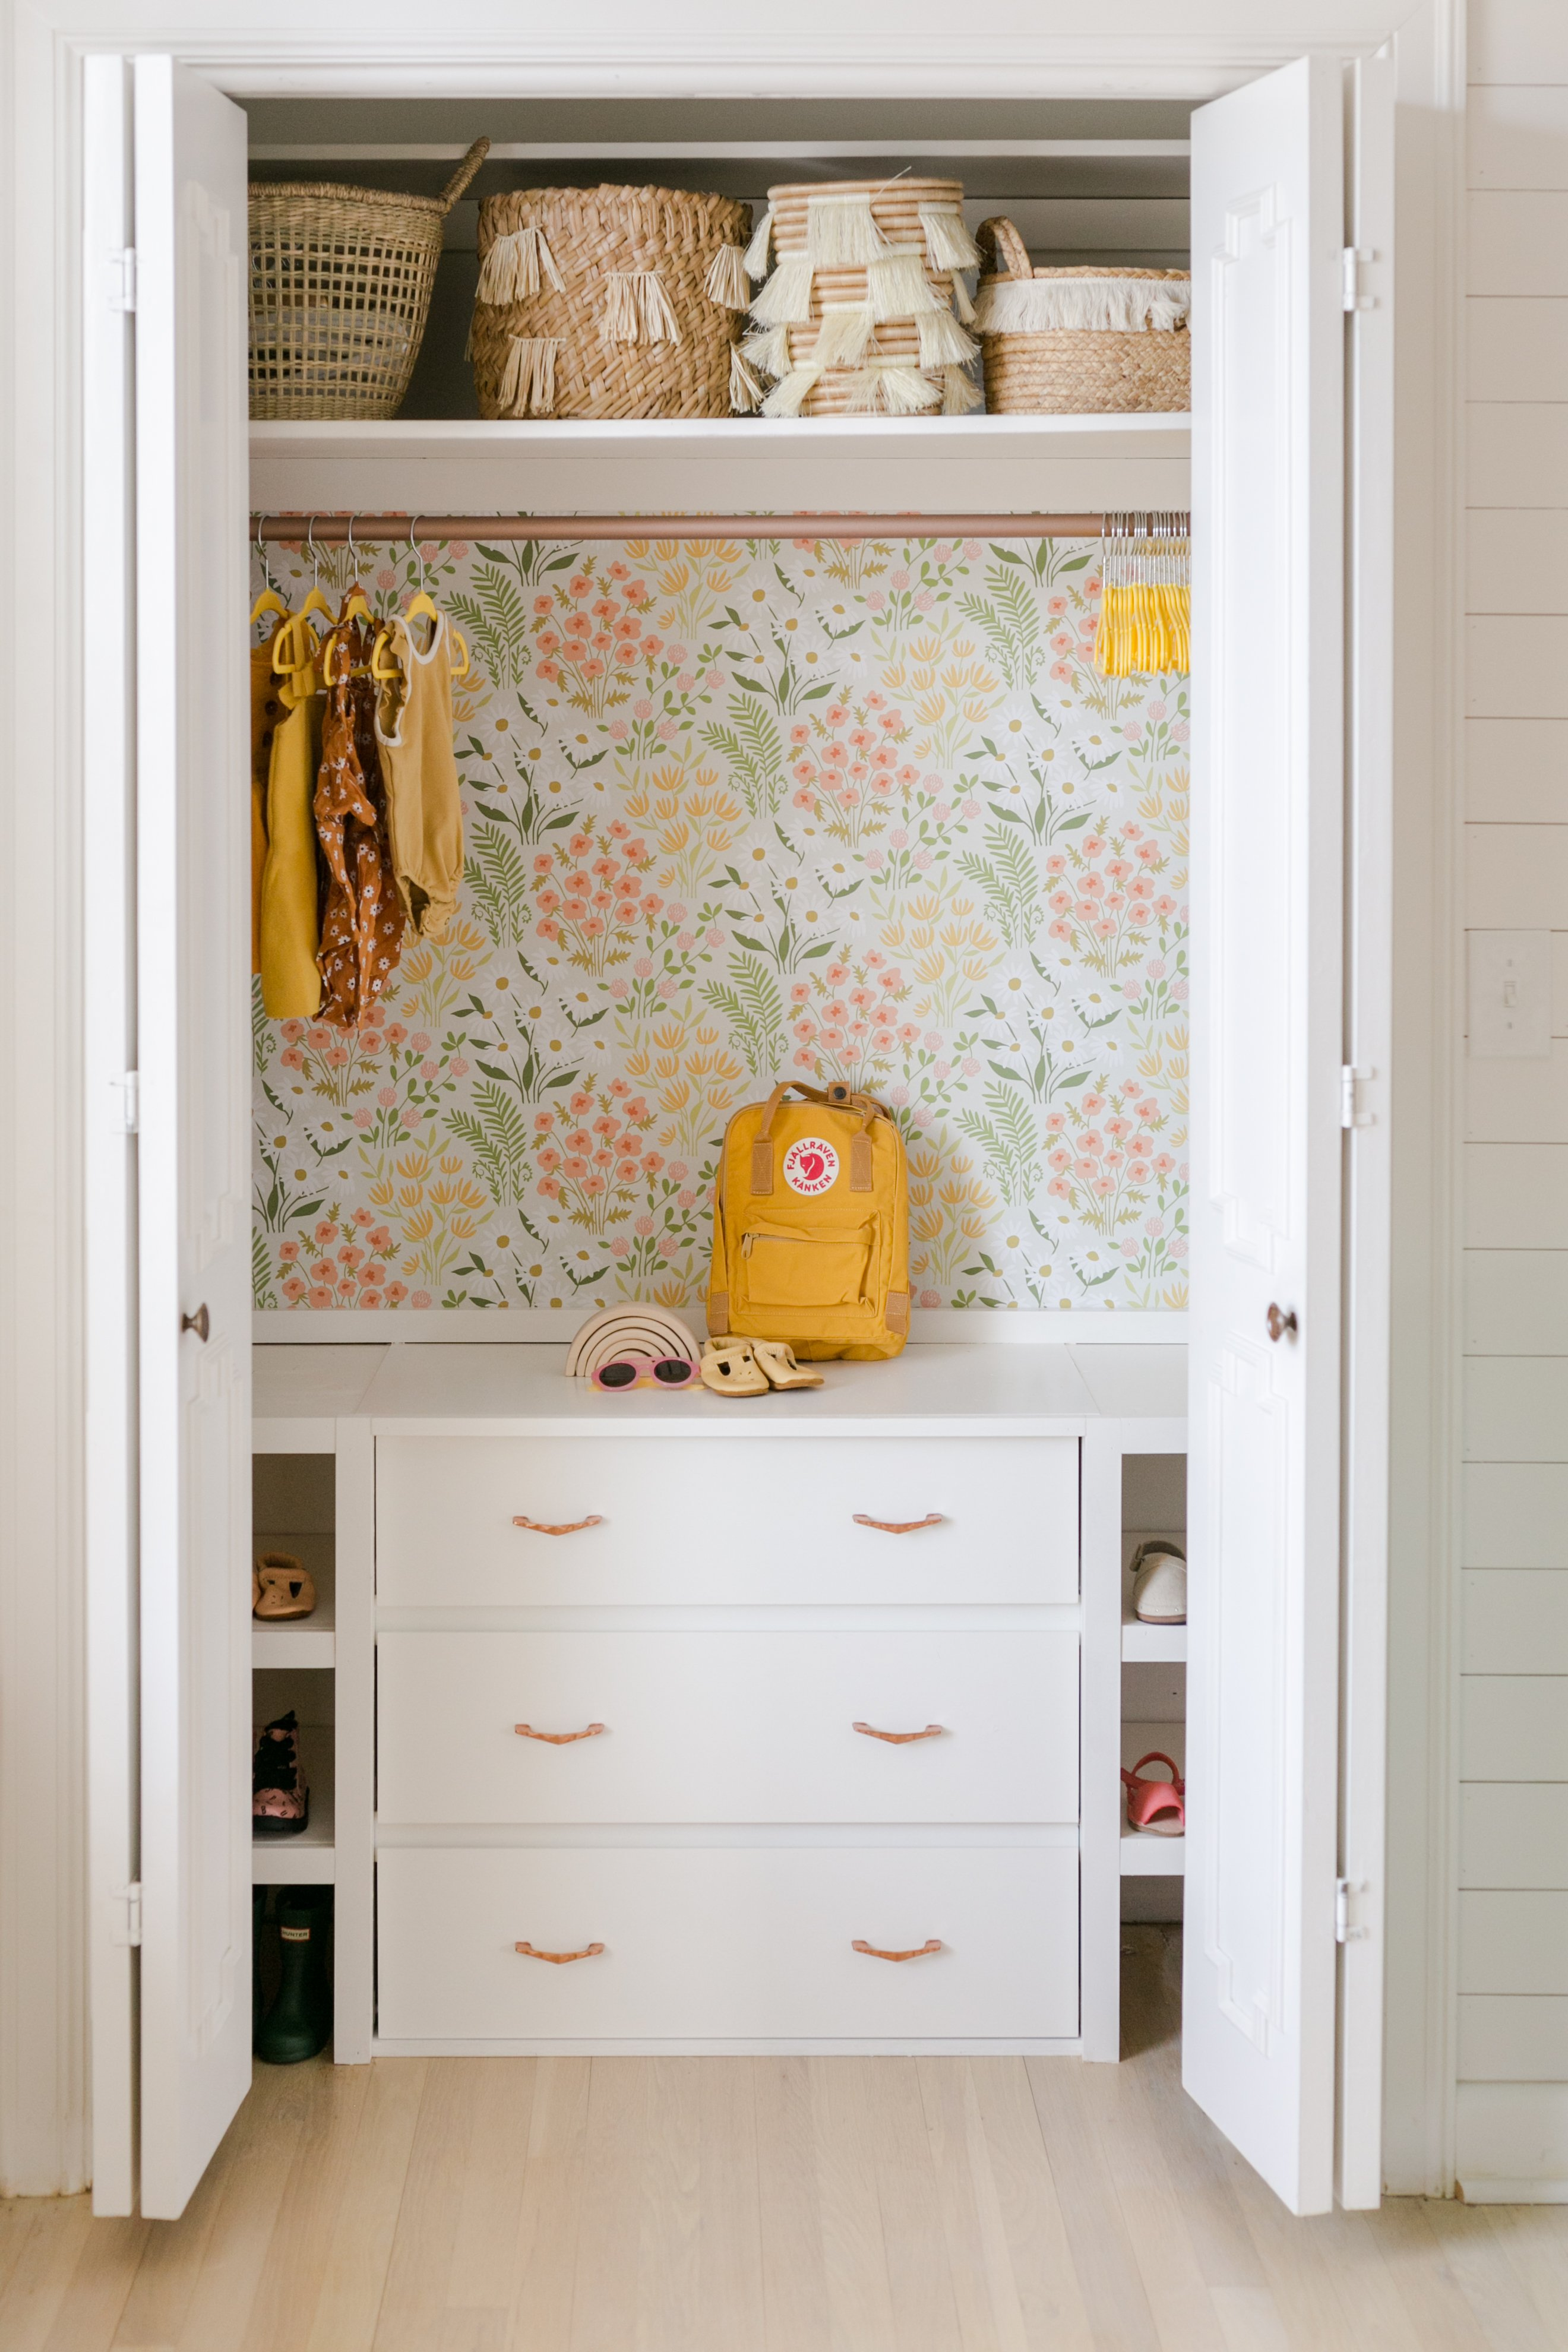 Tips for Reconfiguring a Closet